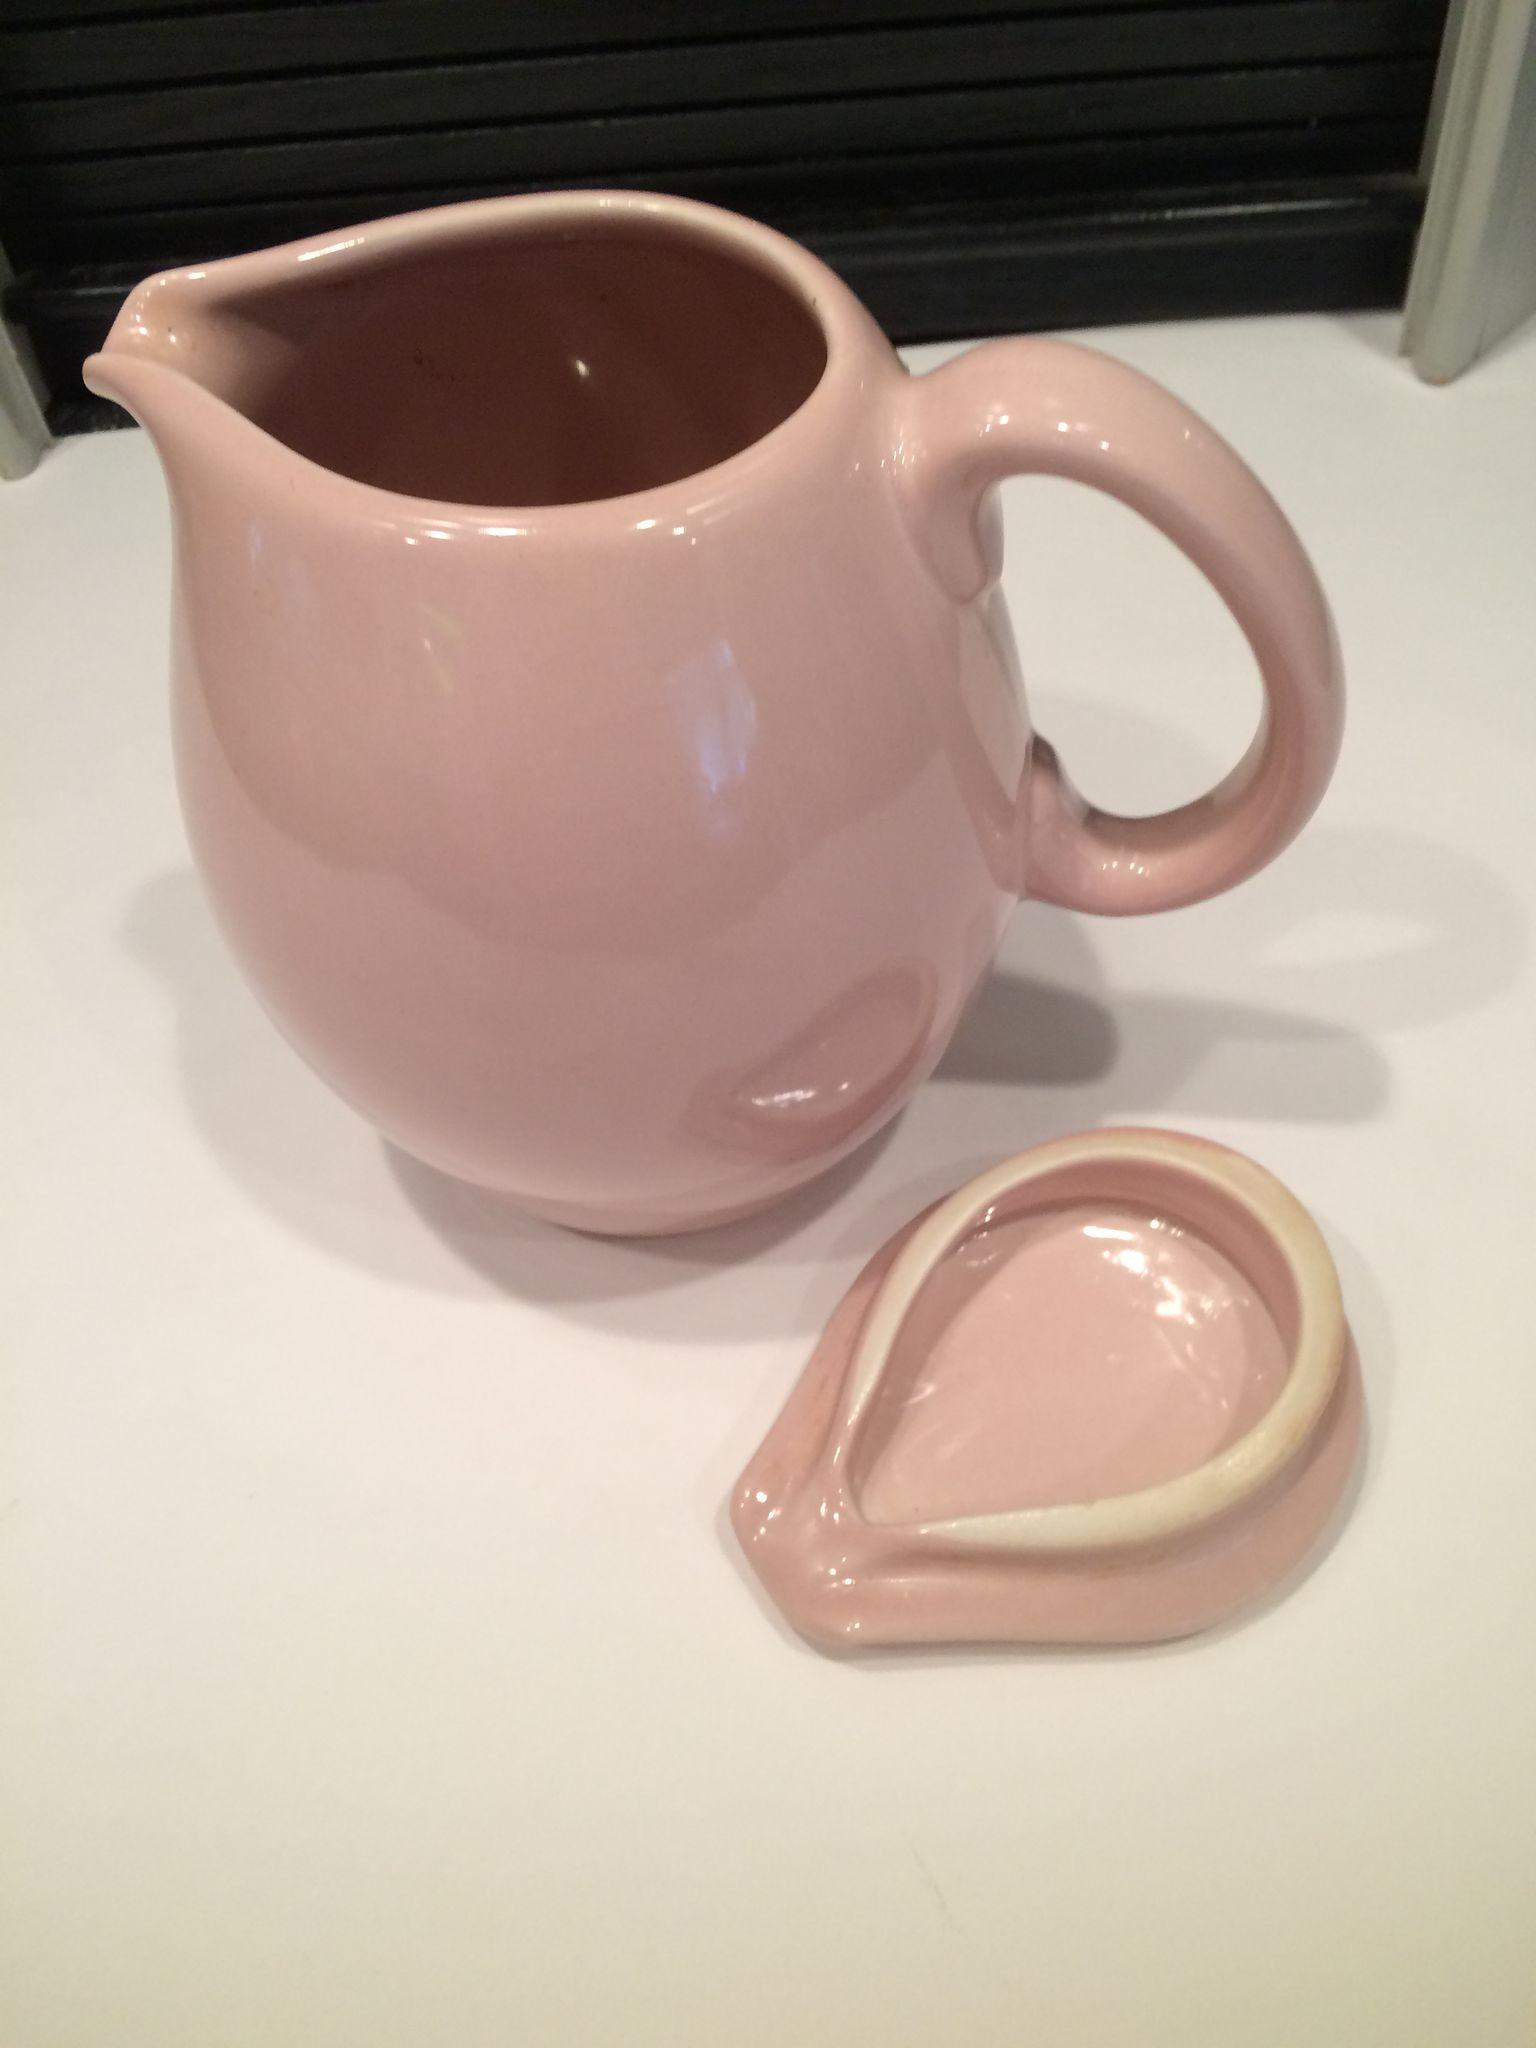 Pink iroquois 1 5 quart covered pitcher by russel wright from eraofmyways on ruby lane - Russel wright pitcher ...